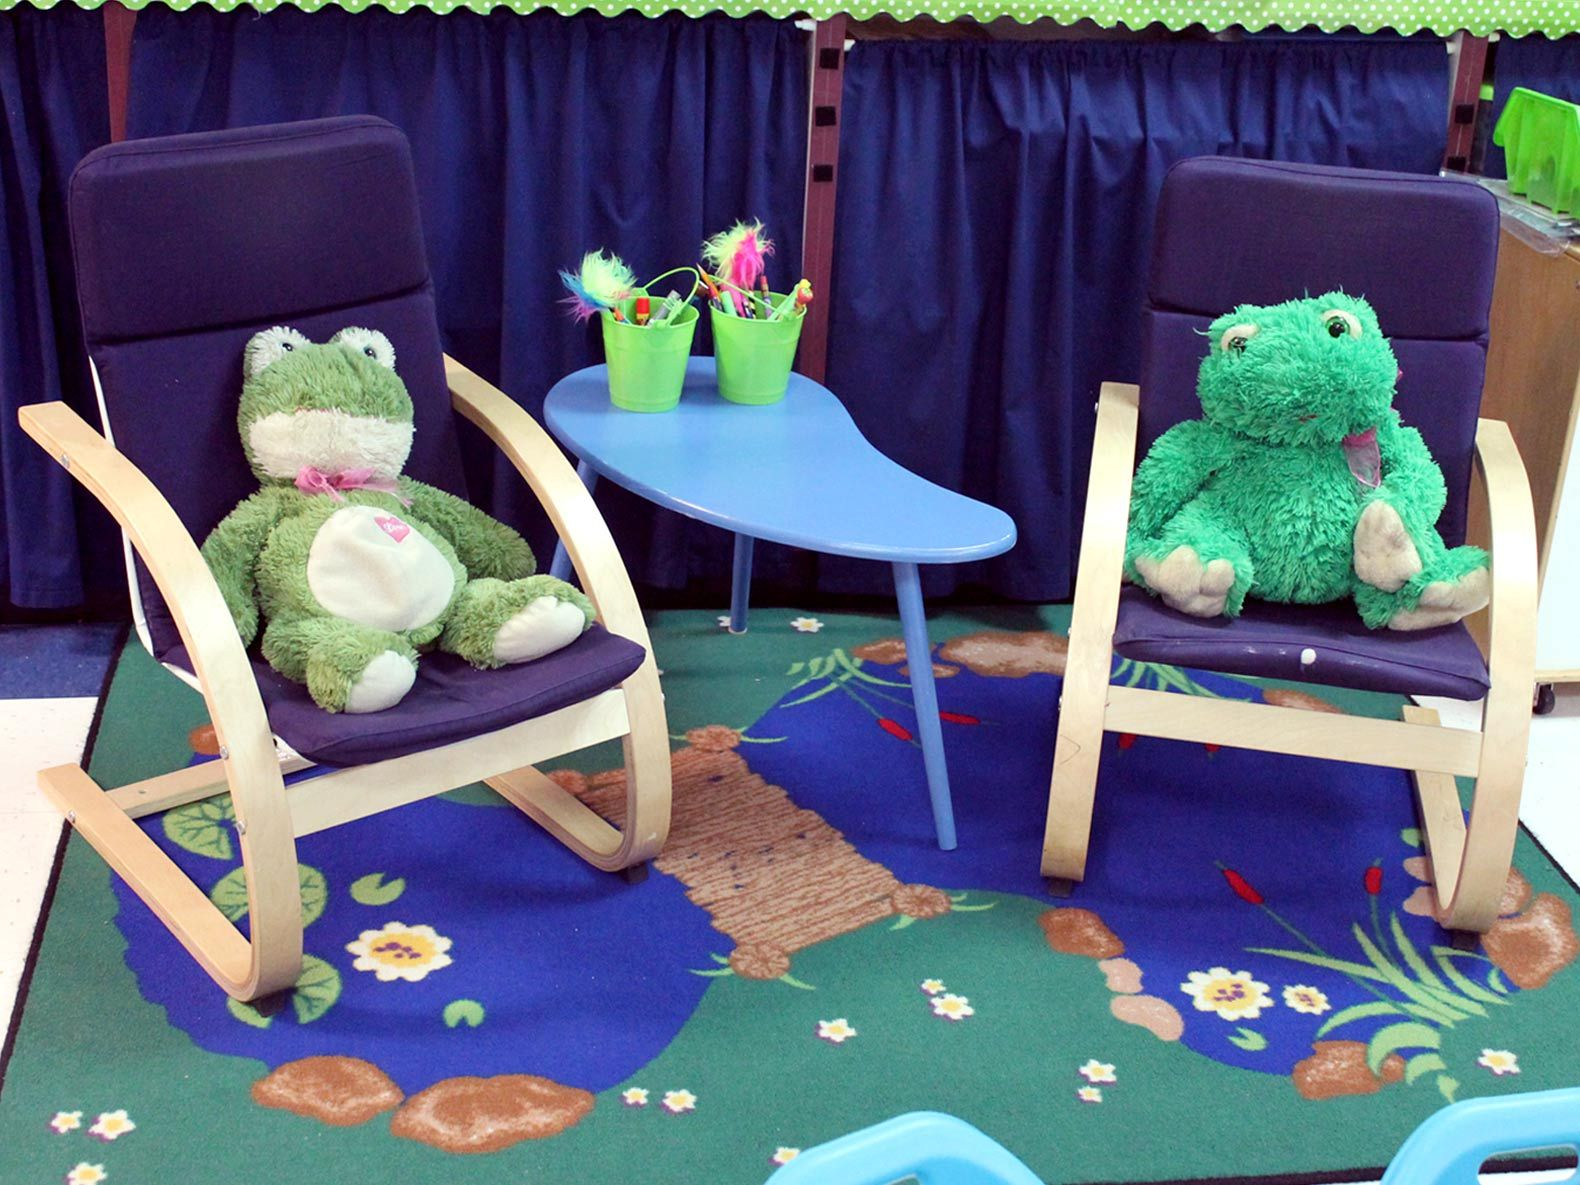 Moyers zoned off a reading area by placing two rocking chairs and a small table on a throw rug.